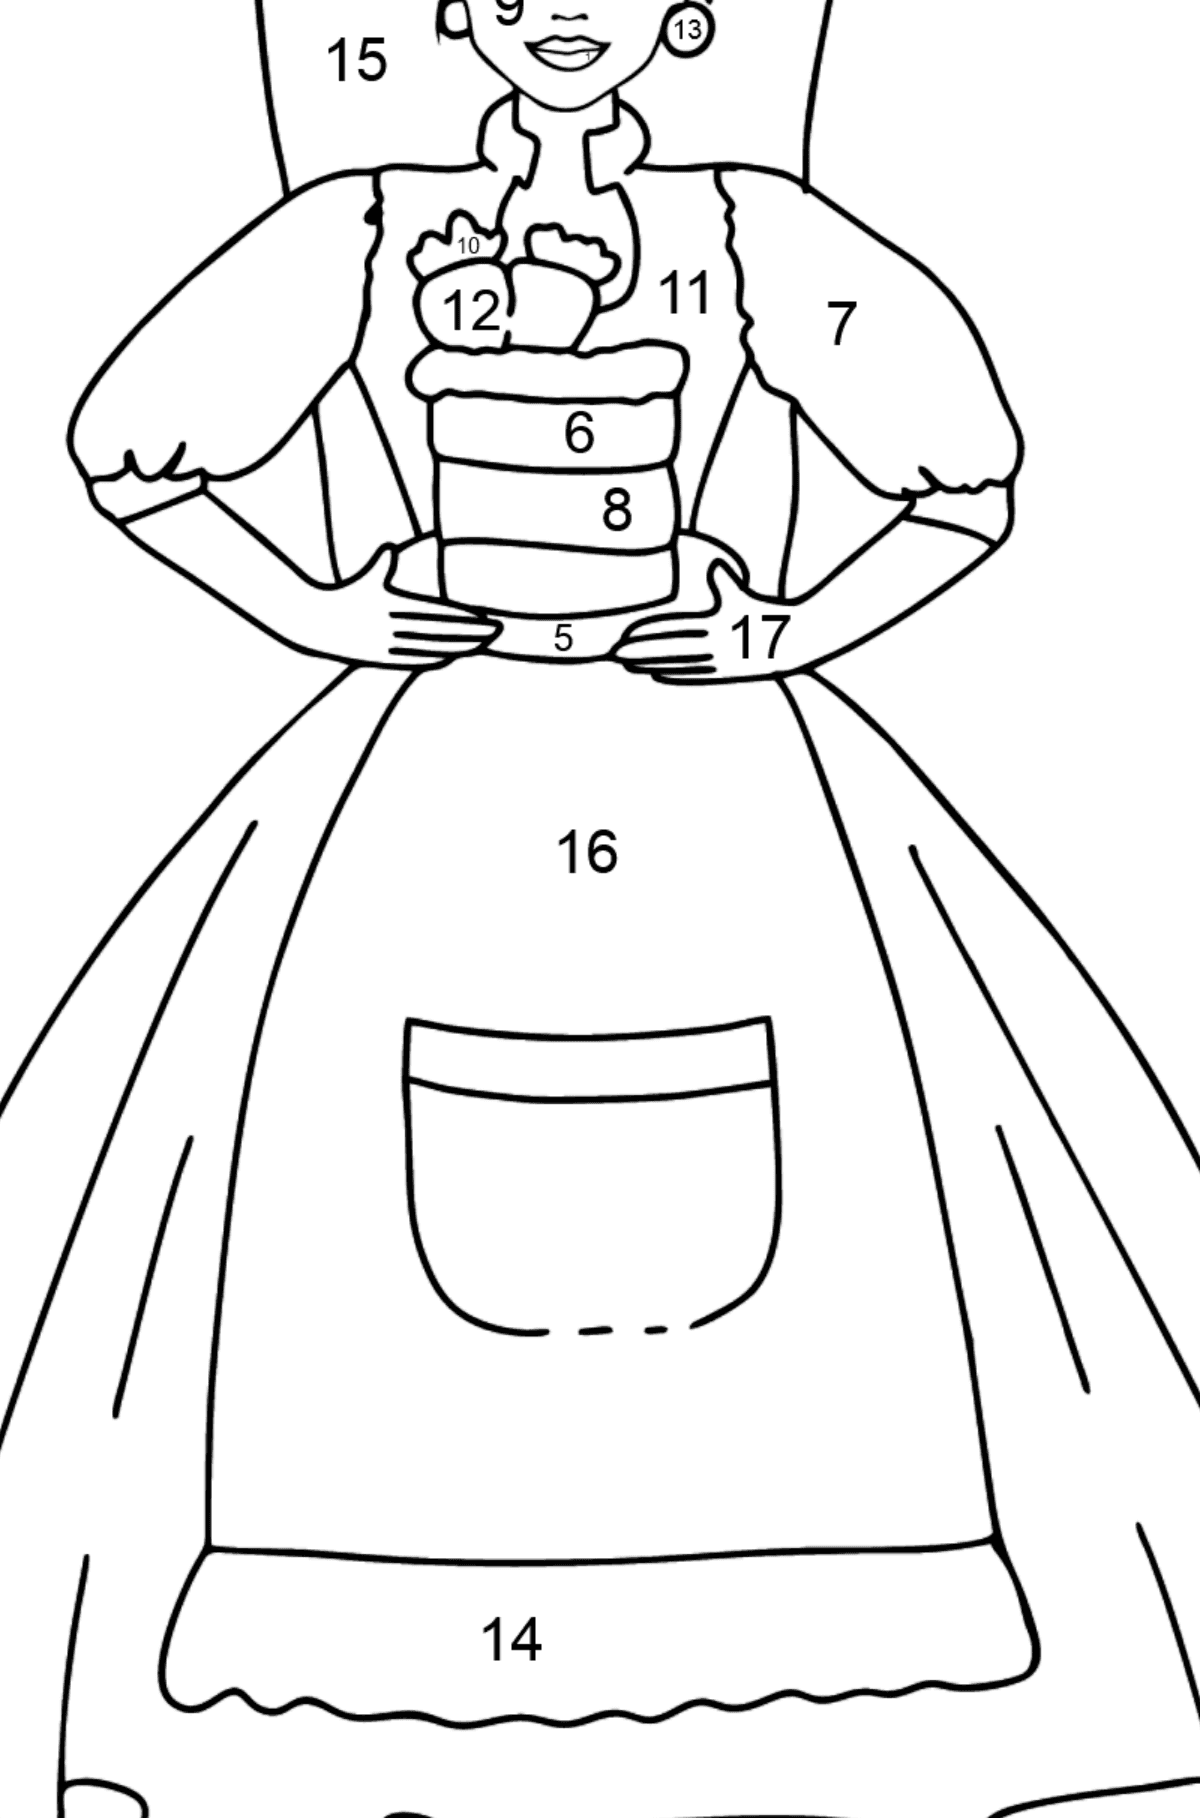 Barbie Doll and Cake coloring page - Coloring by Numbers for Kids